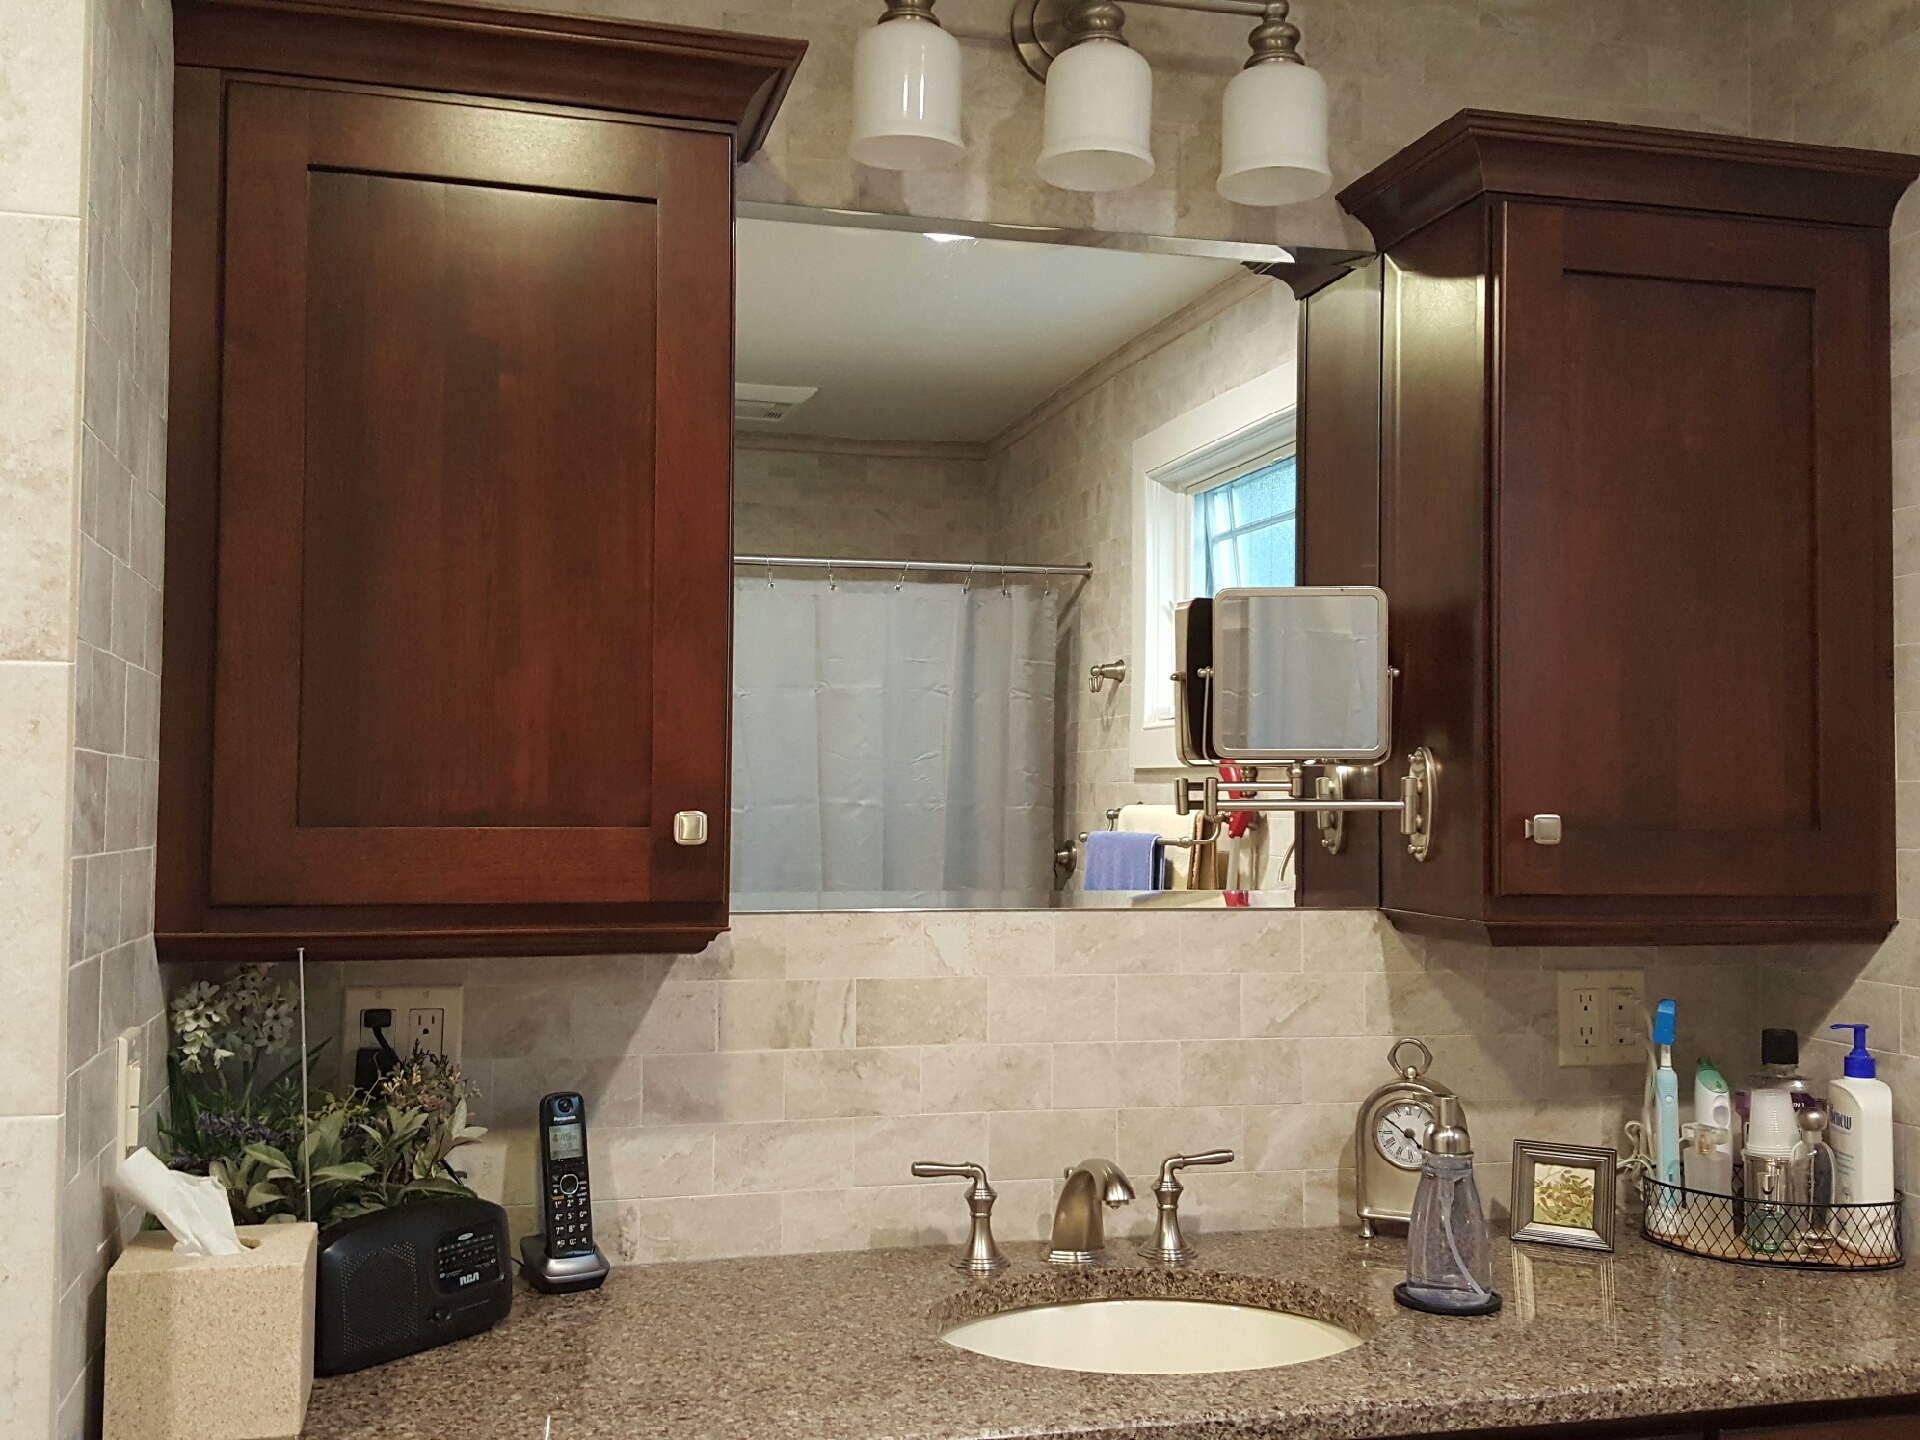 Long Island Bathroom Remodeling  Fair & Square Contracting. Casement Window Glass Replacement. Companies That Use Enterprise Resource Planning. Wyoming Business Report Cheap College Courses. At&t Commercial Internet Home Repair Company. Project Scheduling And Tracking. Sore Throat And Cough For A Week. Edgewood Treatment Center 4gb Usb Thumb Drive. Online Payment Processing Comparison